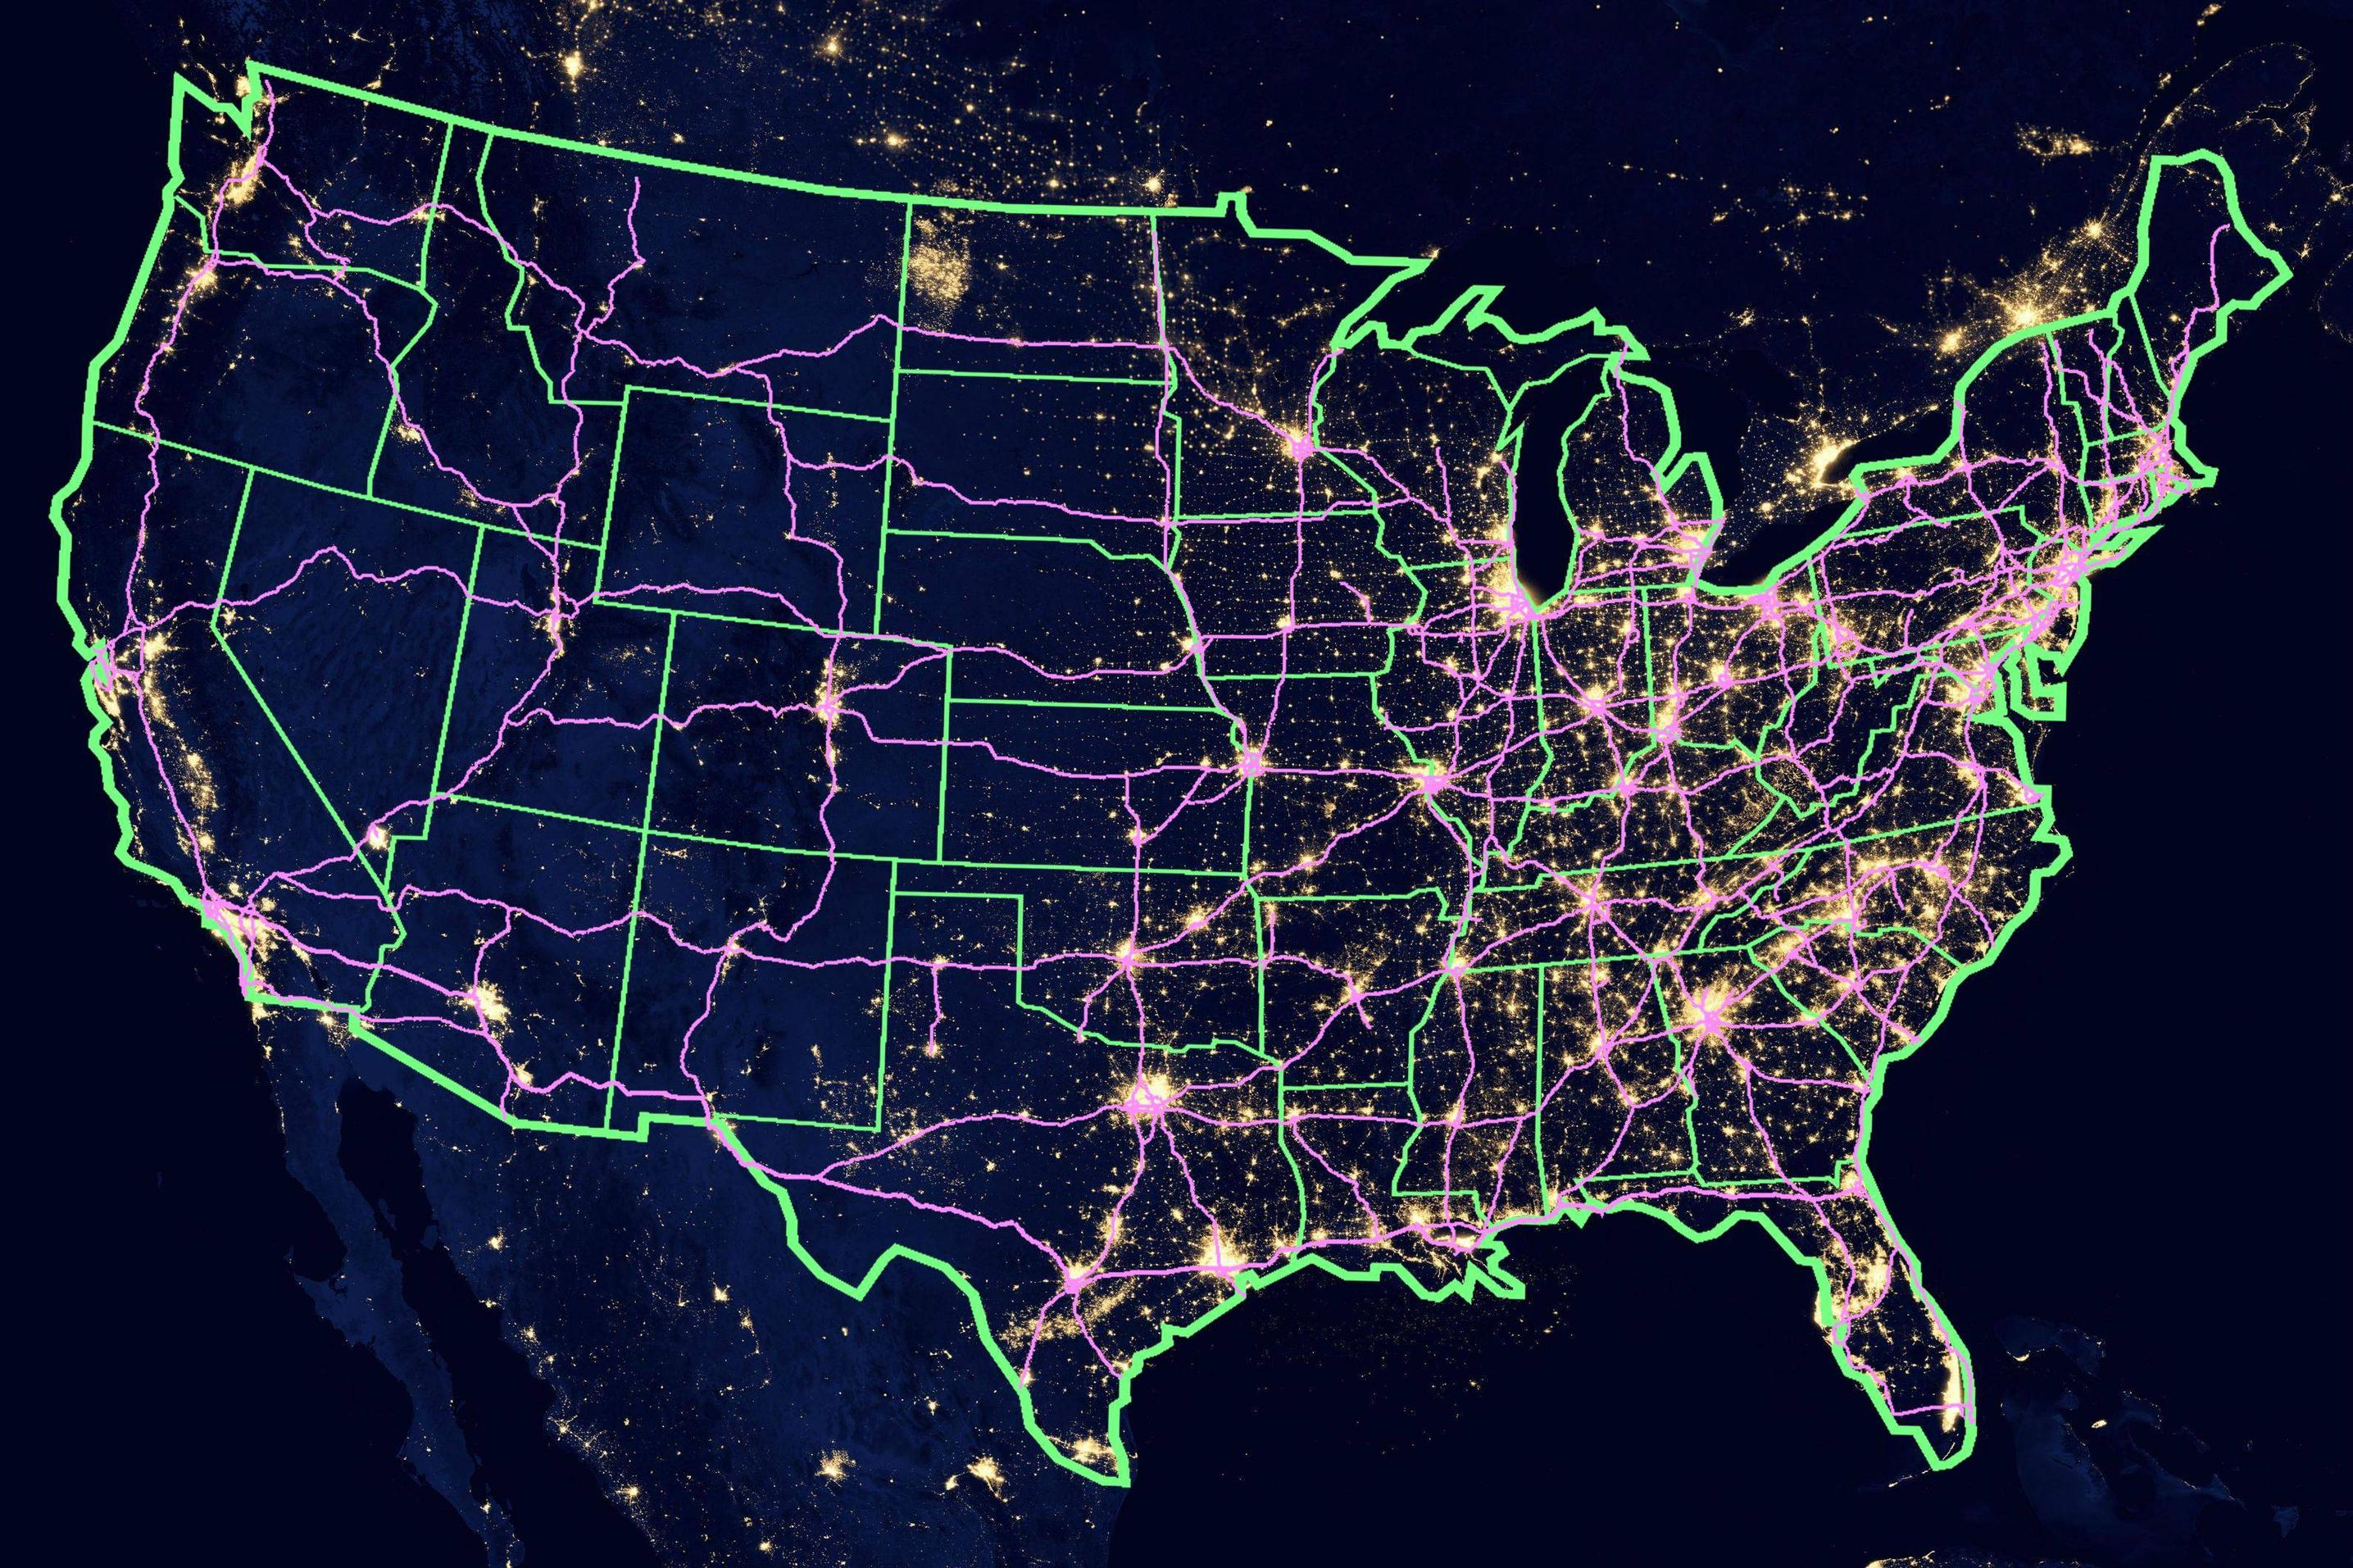 high resolution satellite photo of lights in north america, here is a us map showing the constellation of city lights and highways